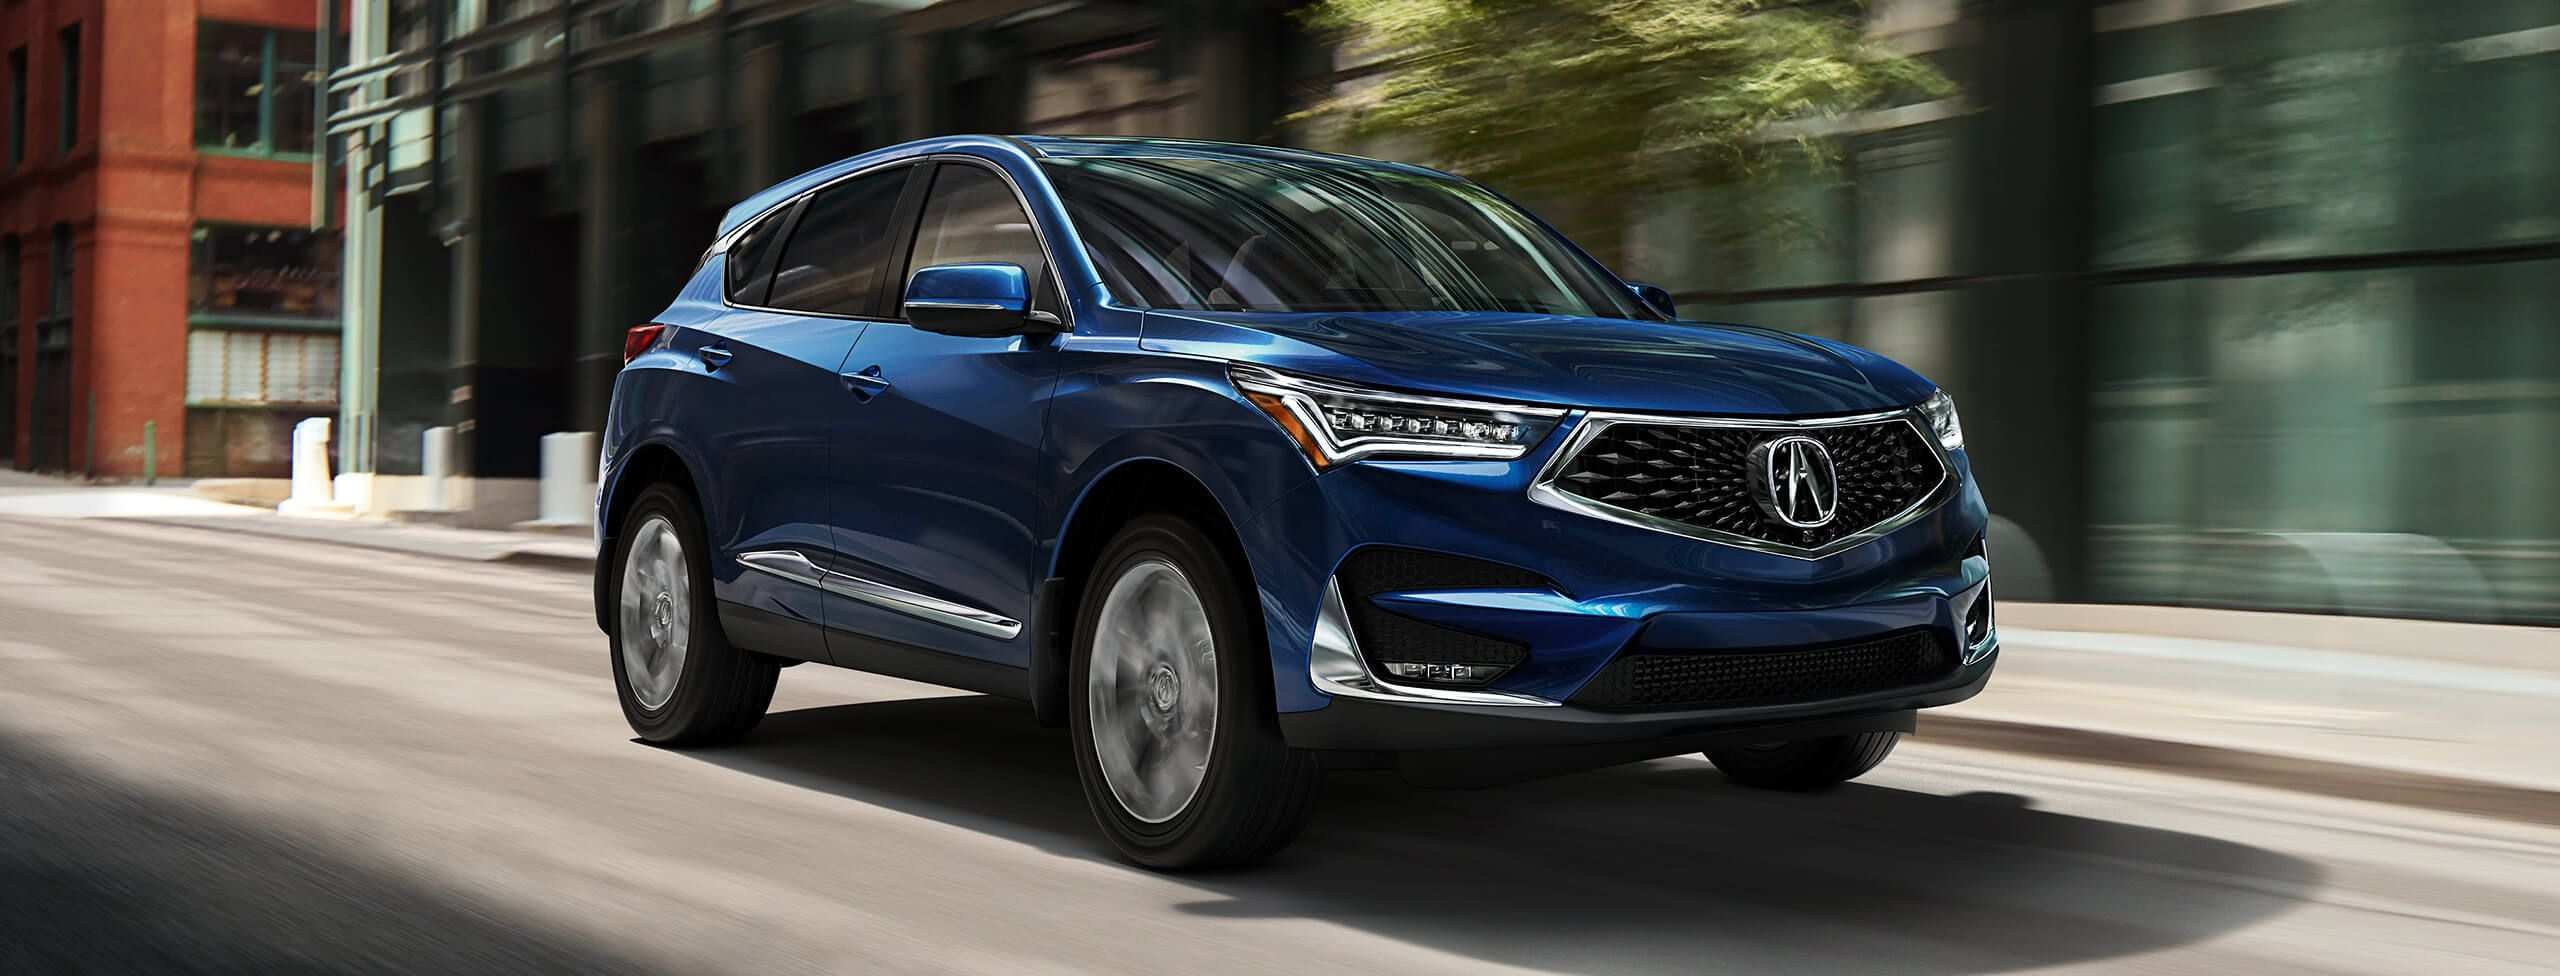 74 Gallery of Best 2019 Acura Rdx Towing Capacity First Drive Price Performance And Review Reviews for Best 2019 Acura Rdx Towing Capacity First Drive Price Performance And Review